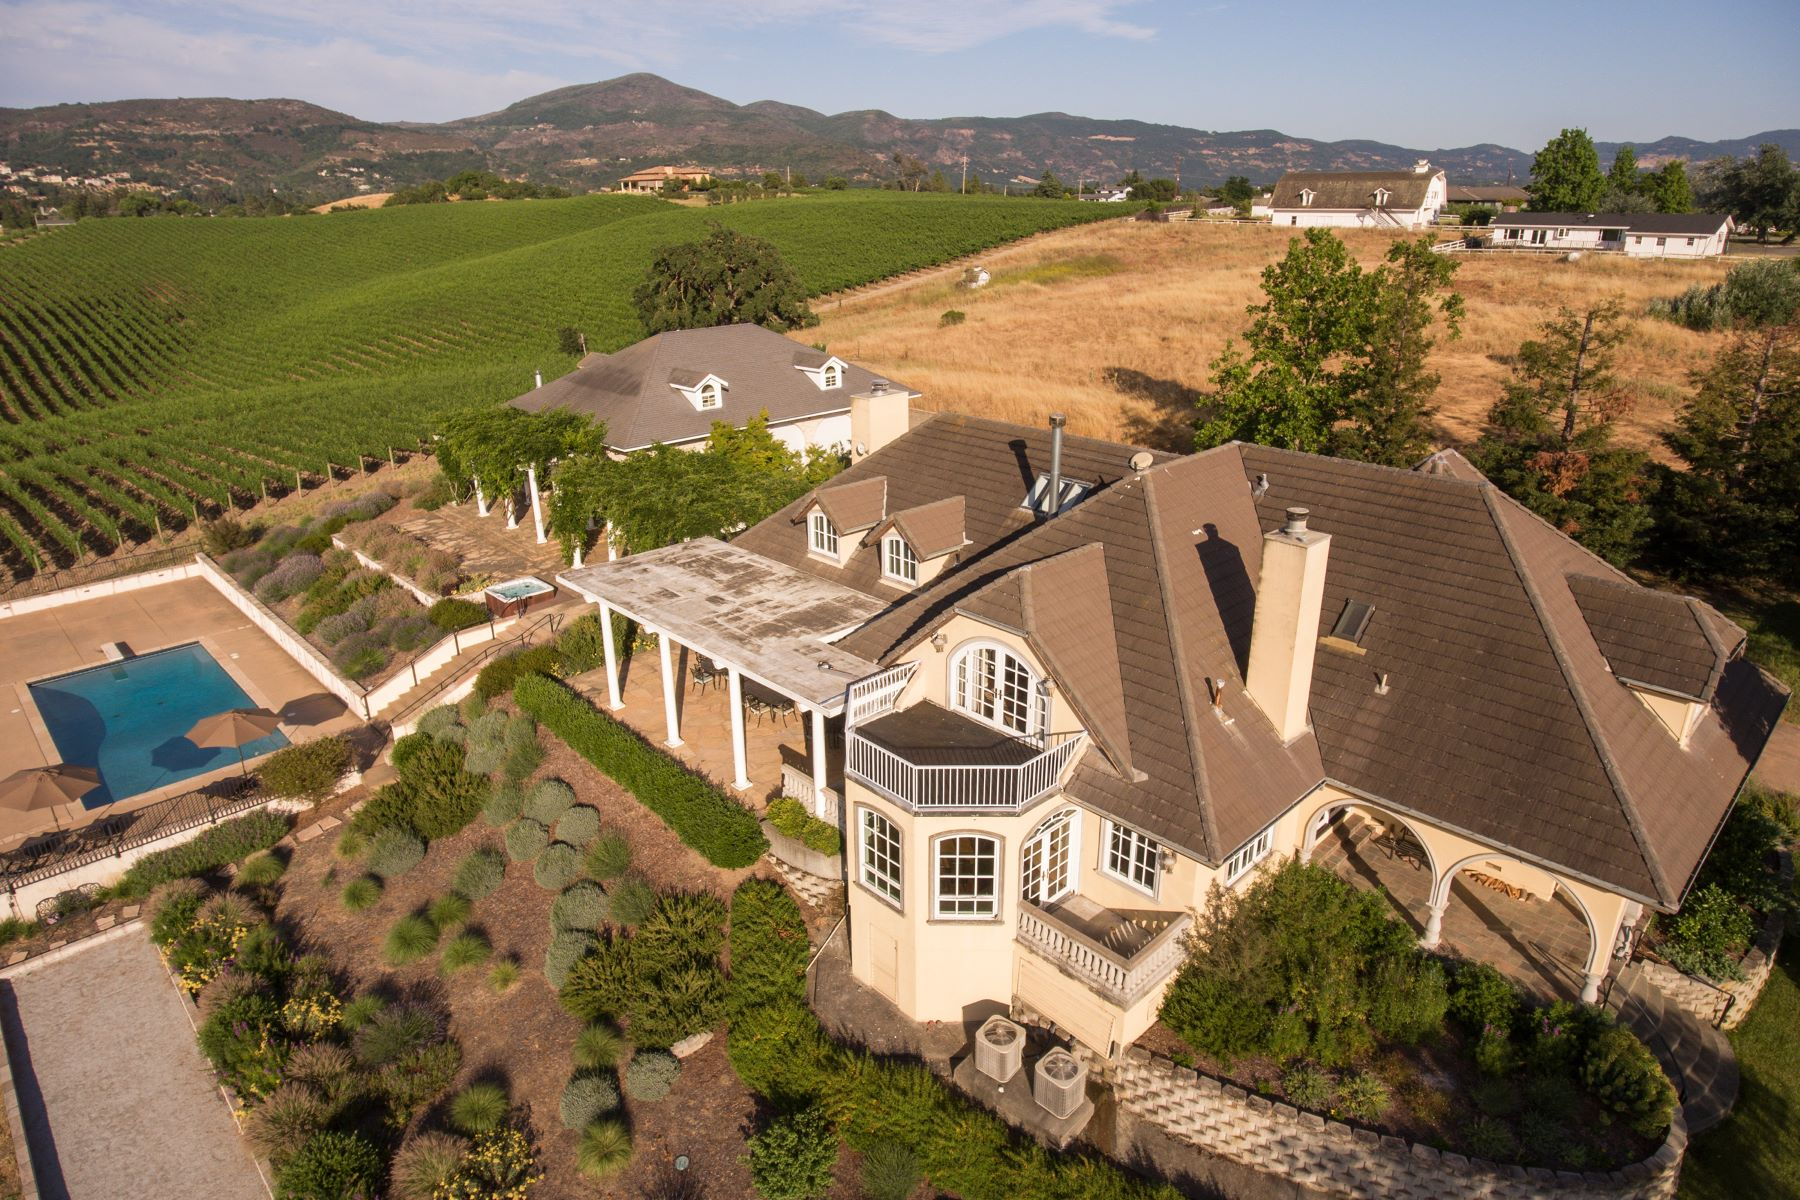 Single Family Home for Sale at Napa Valley Vineyard Estate with Panoramic Views 1100 Hardman Avenue Napa, California 94558 United States